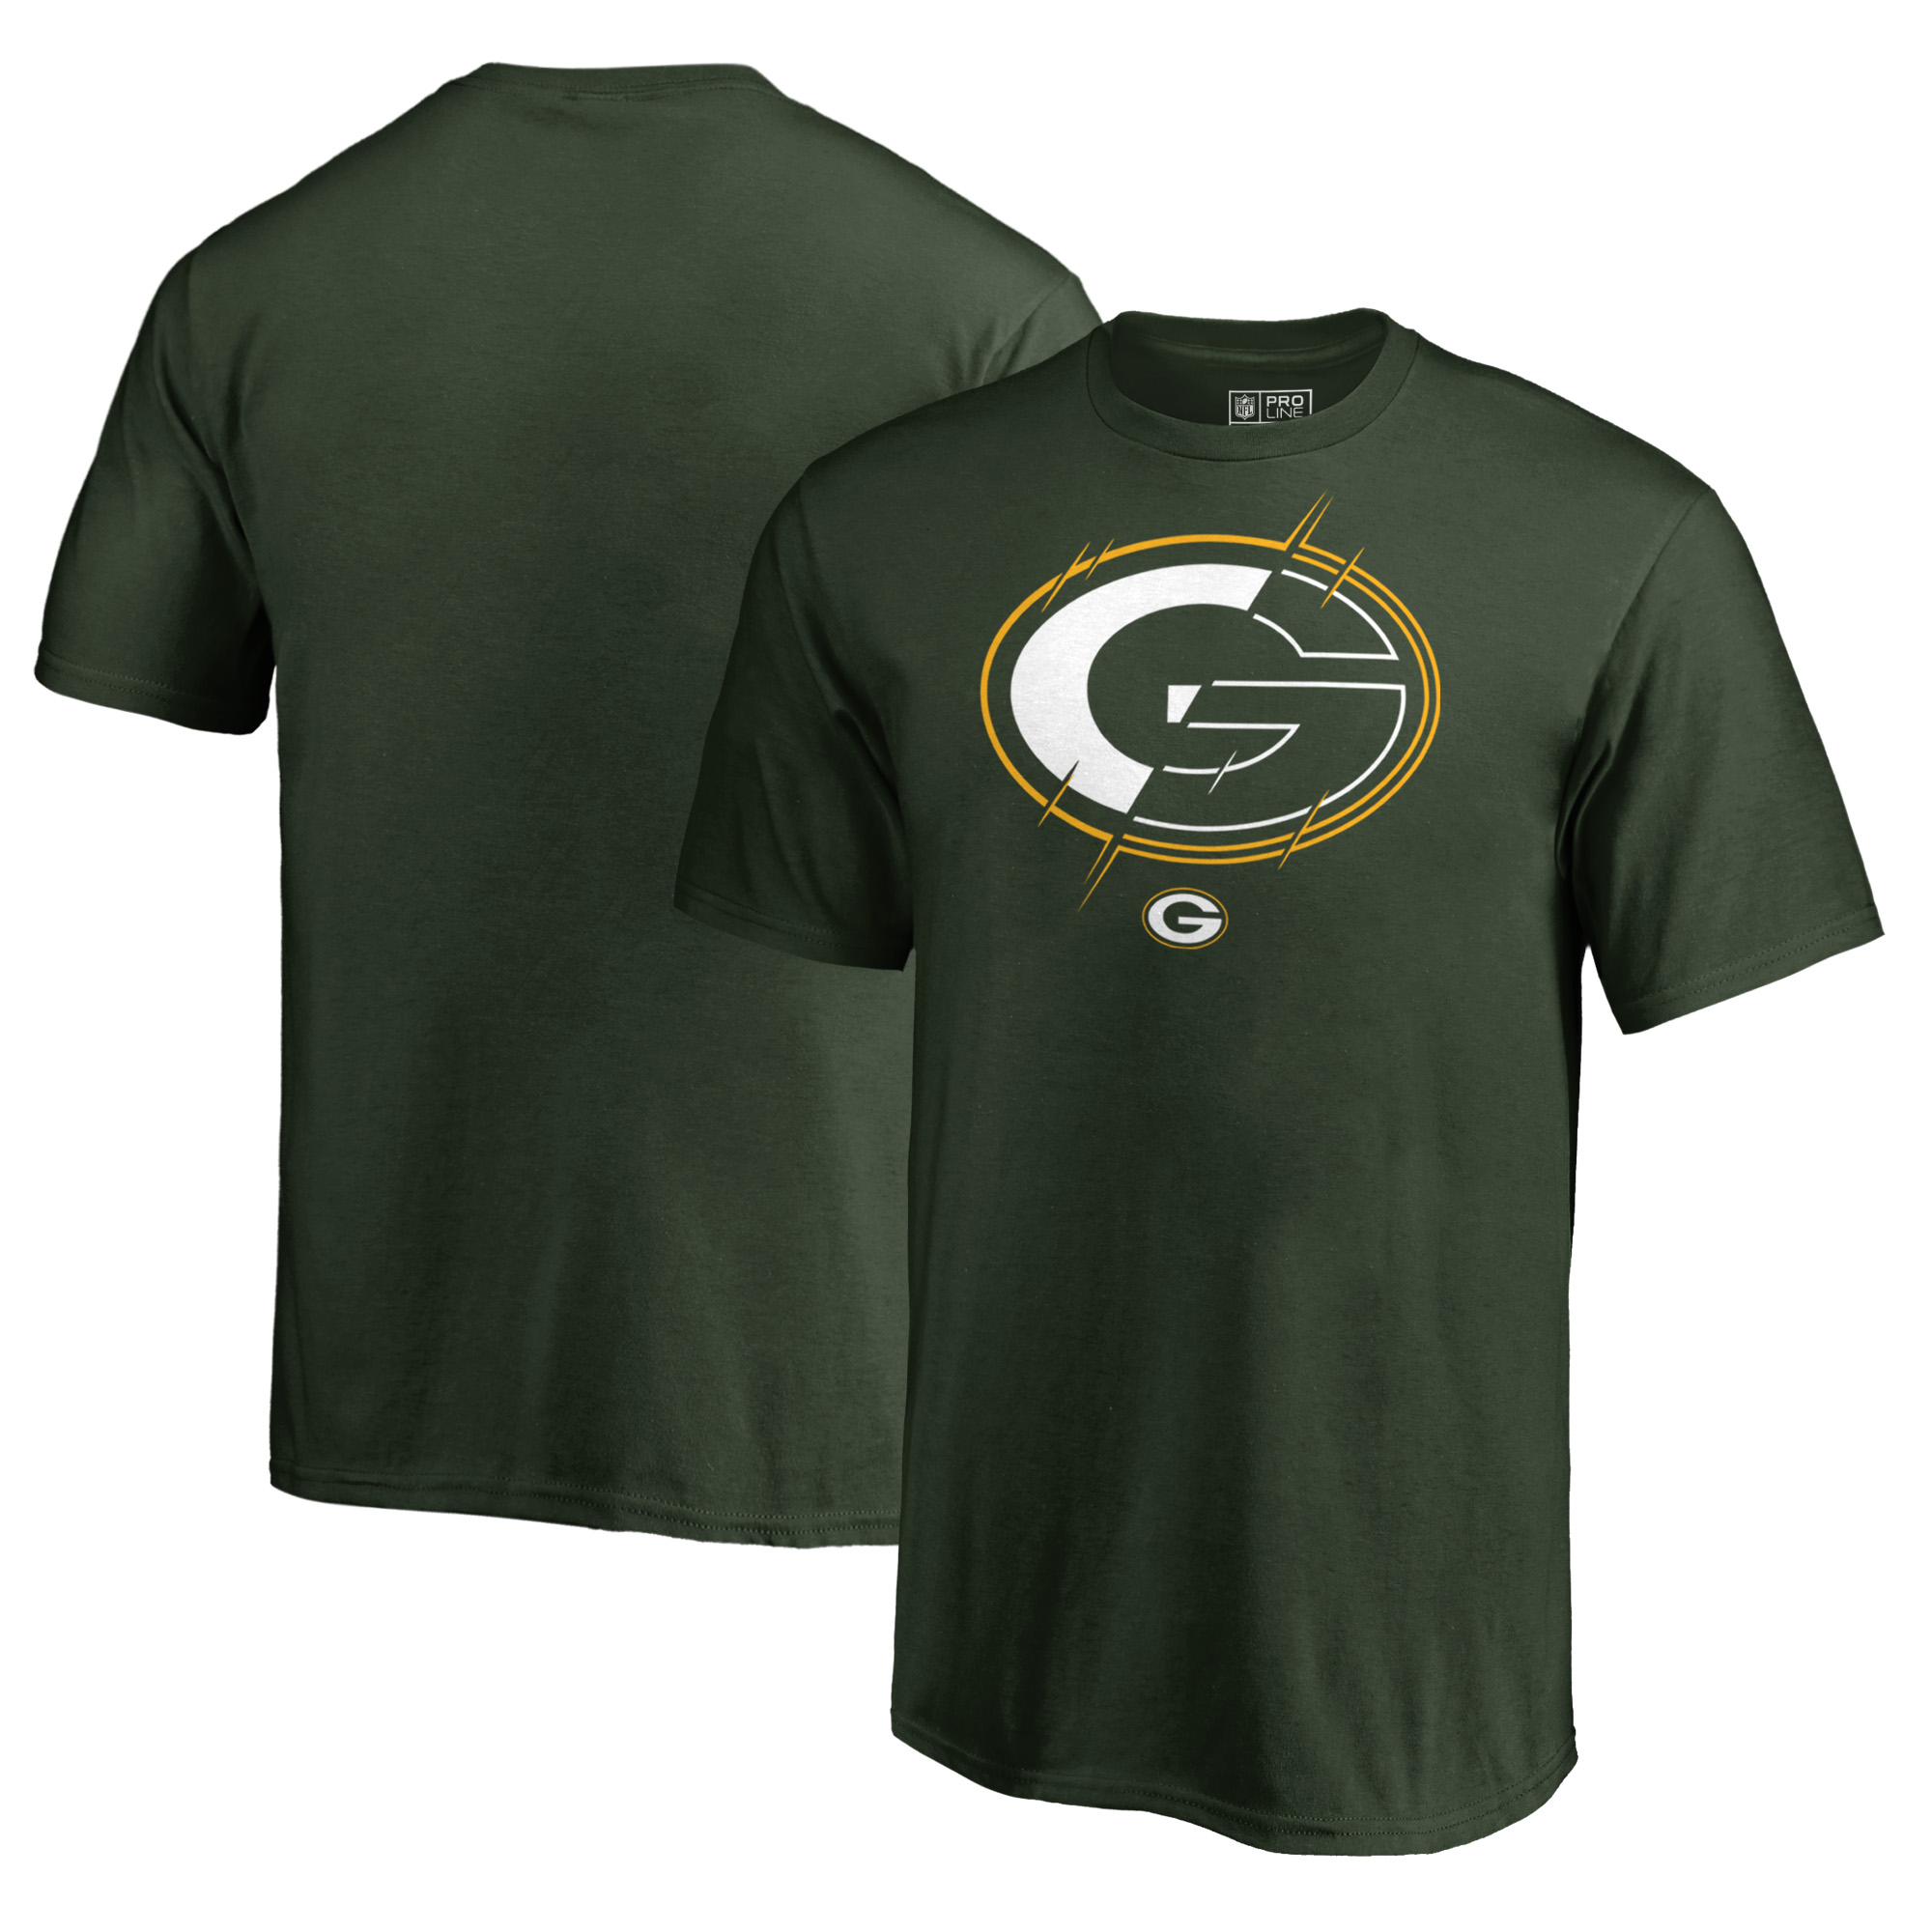 Green Bay Packers NFL Pro Line by Fanatics Branded Youth X-Ray T-Shirt - Green